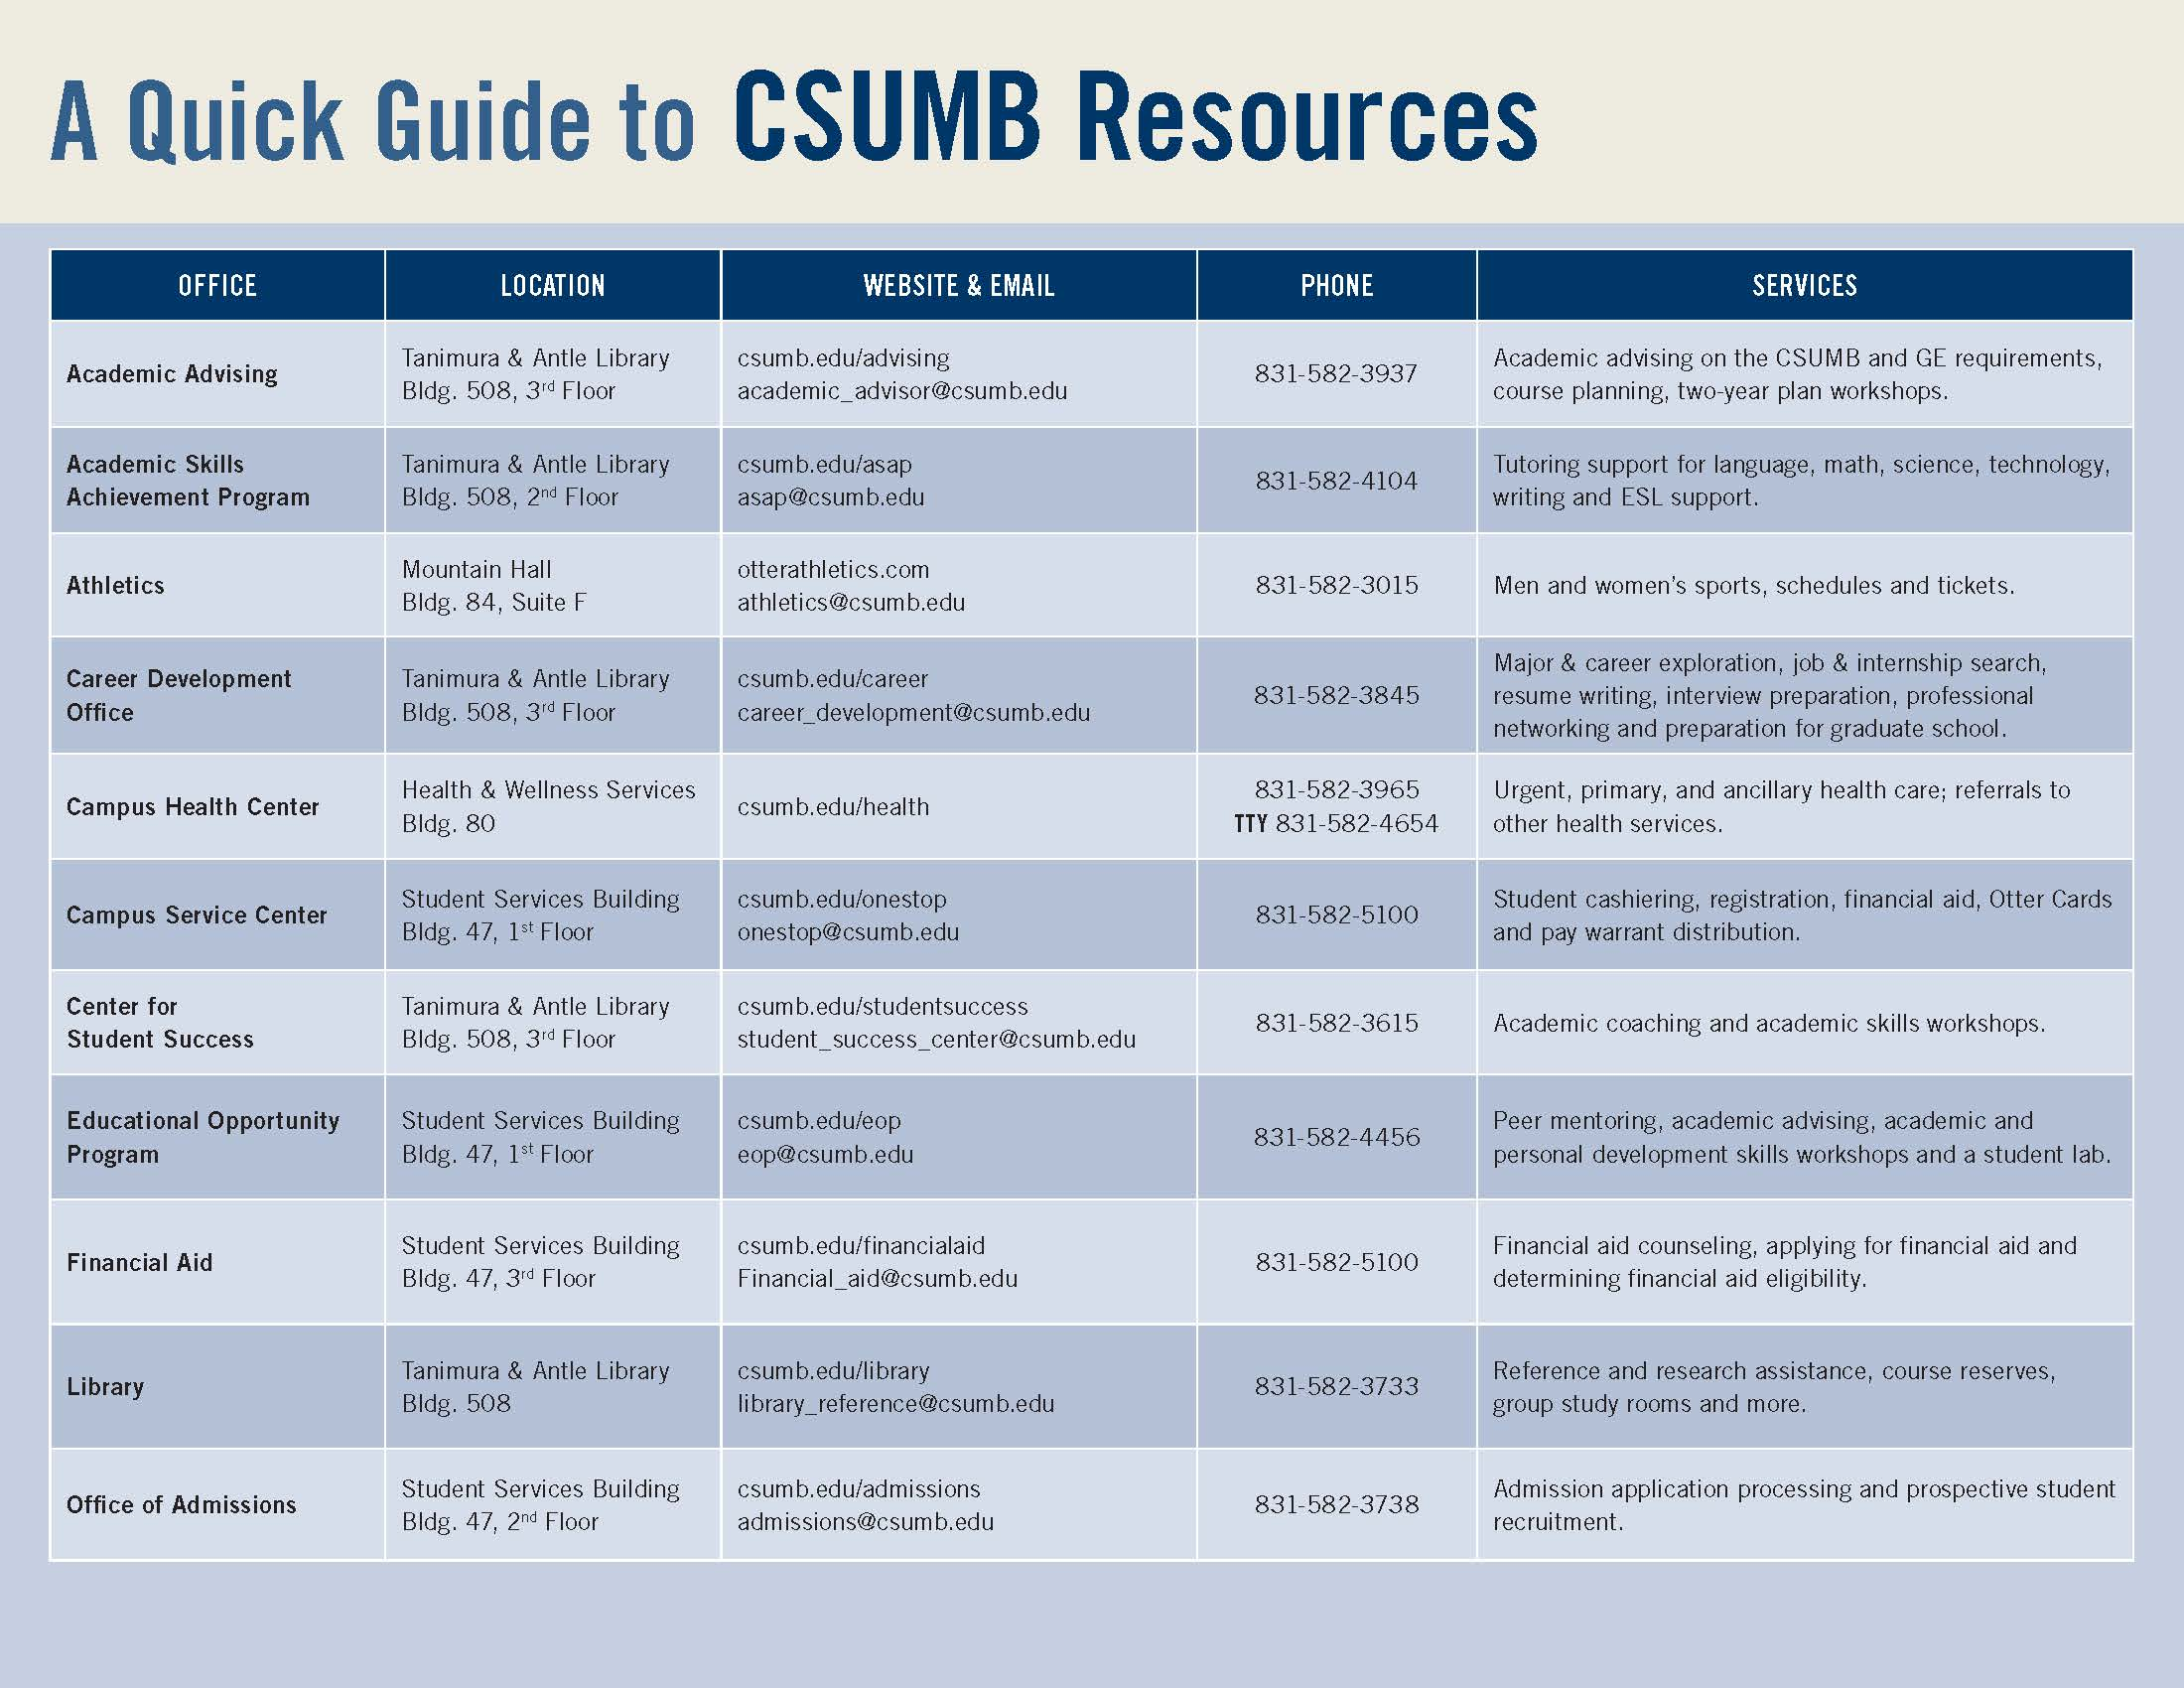 Quick guide resource page 1